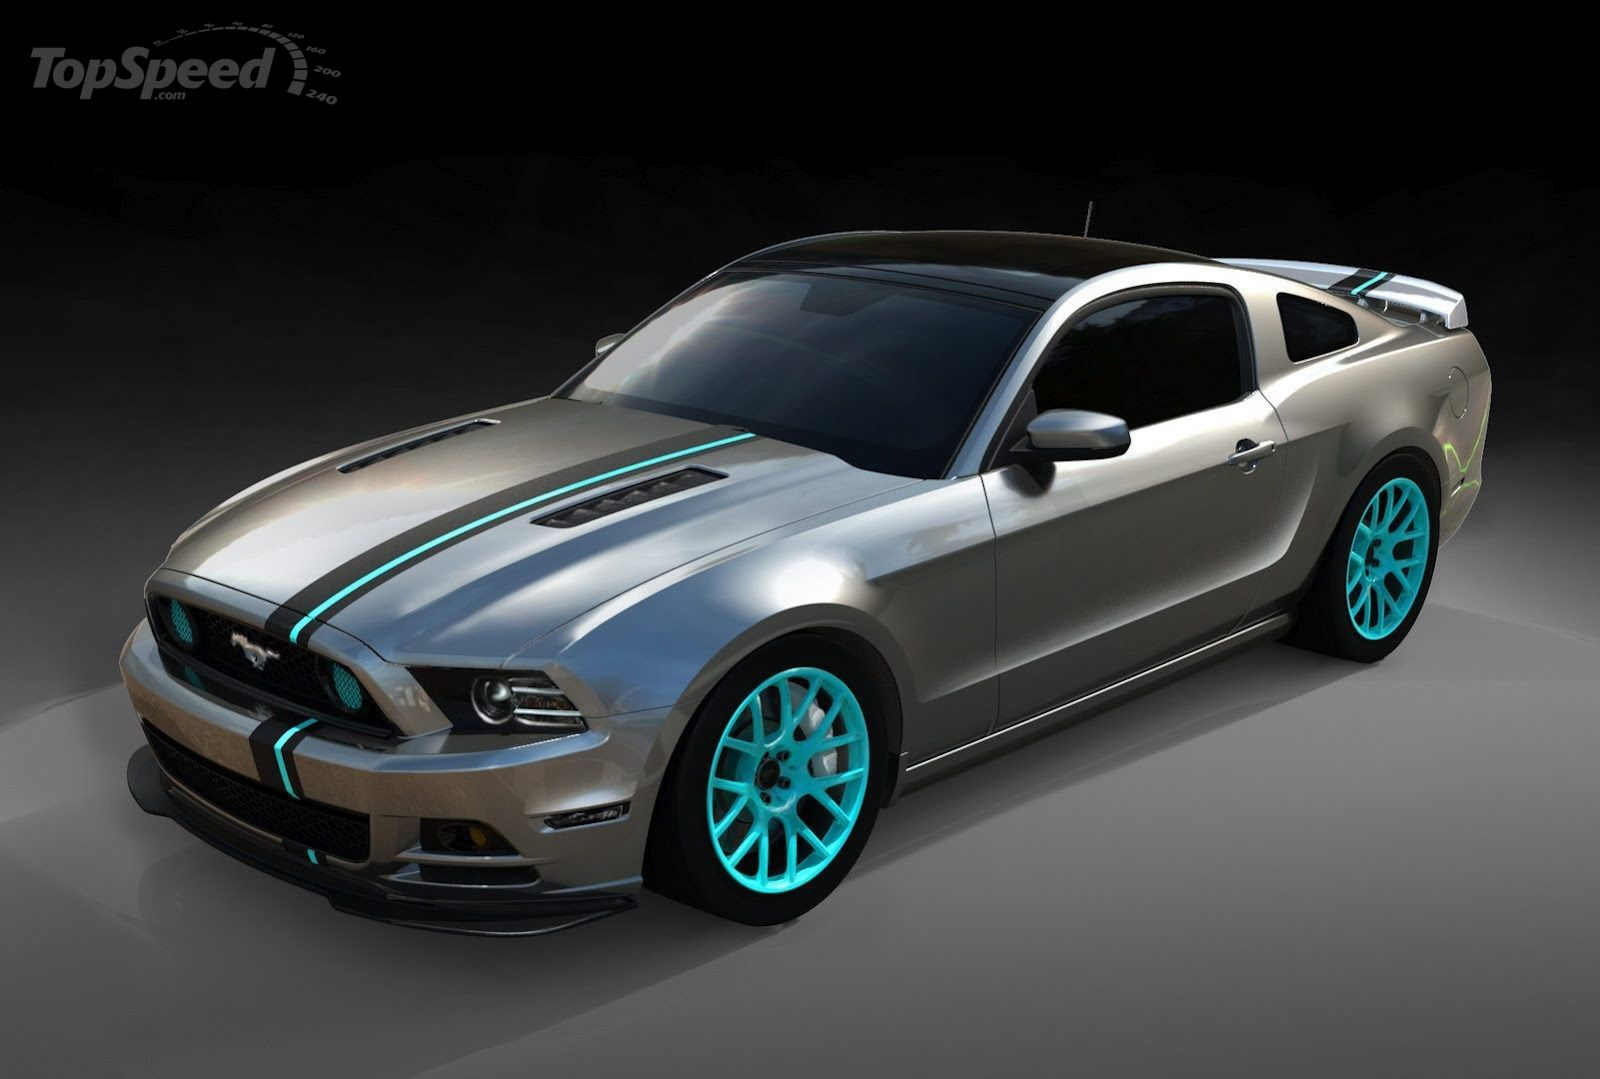 2013 Ford Mustang #13